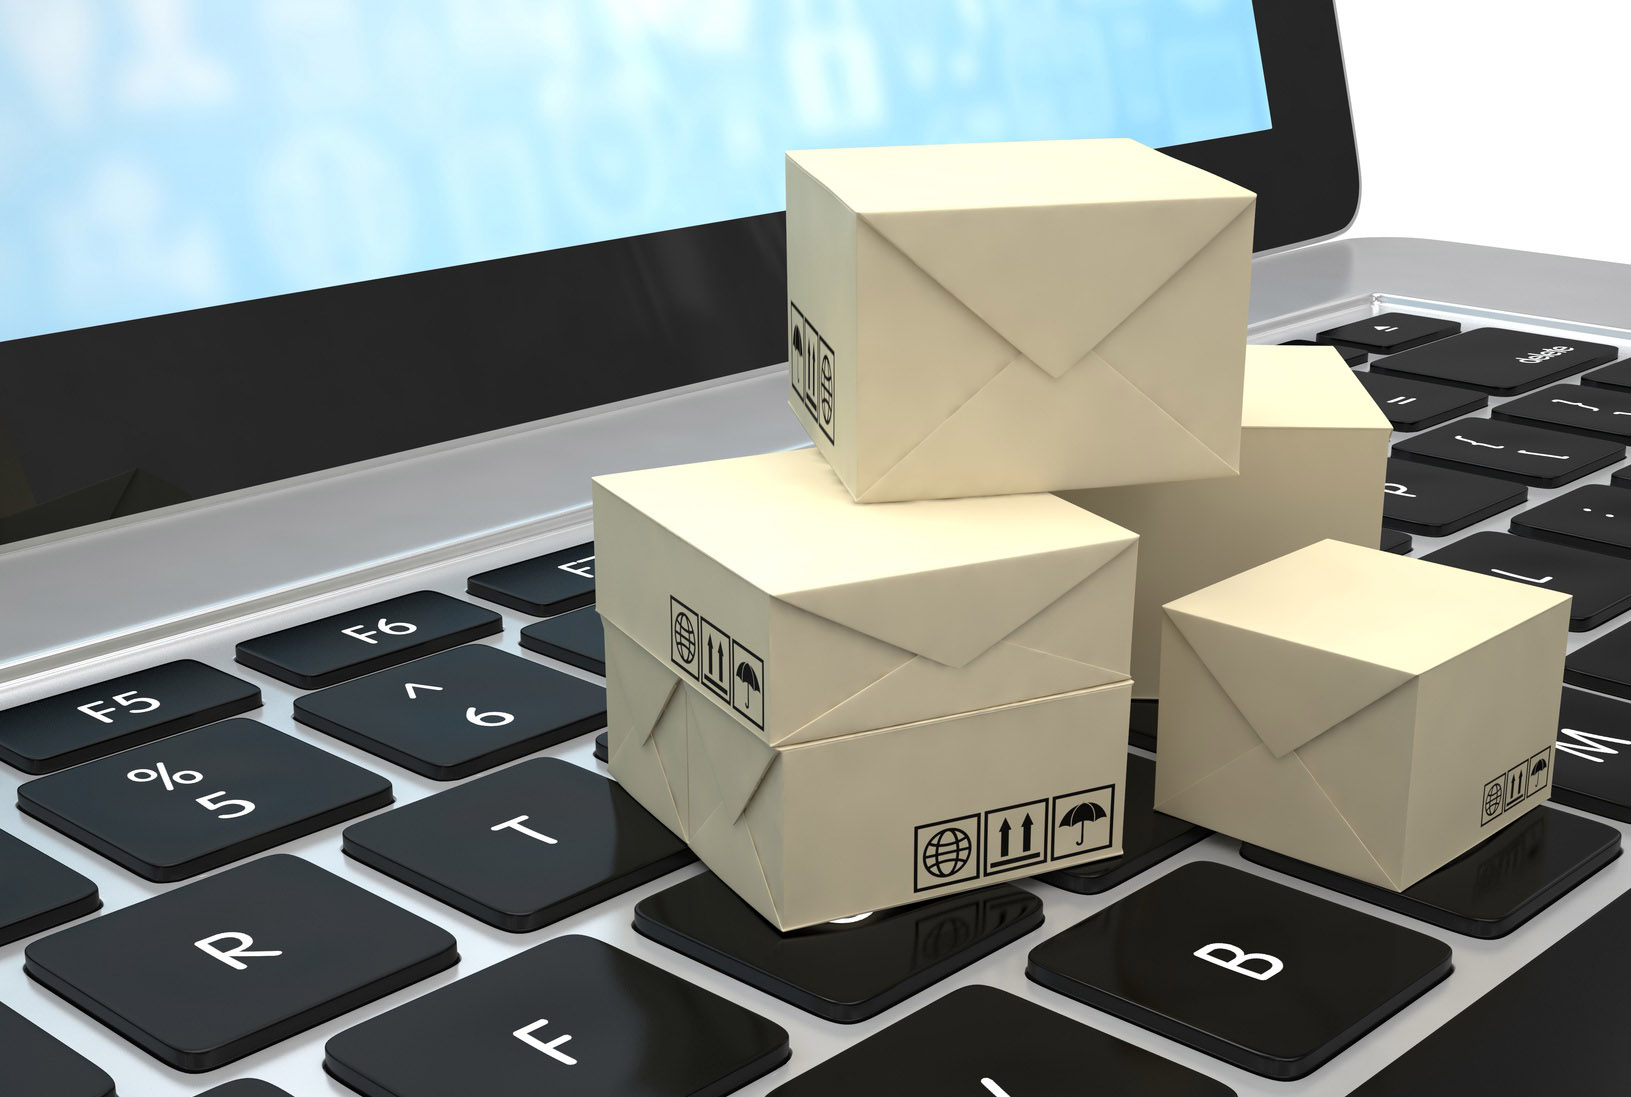 Technology business concept, shipping